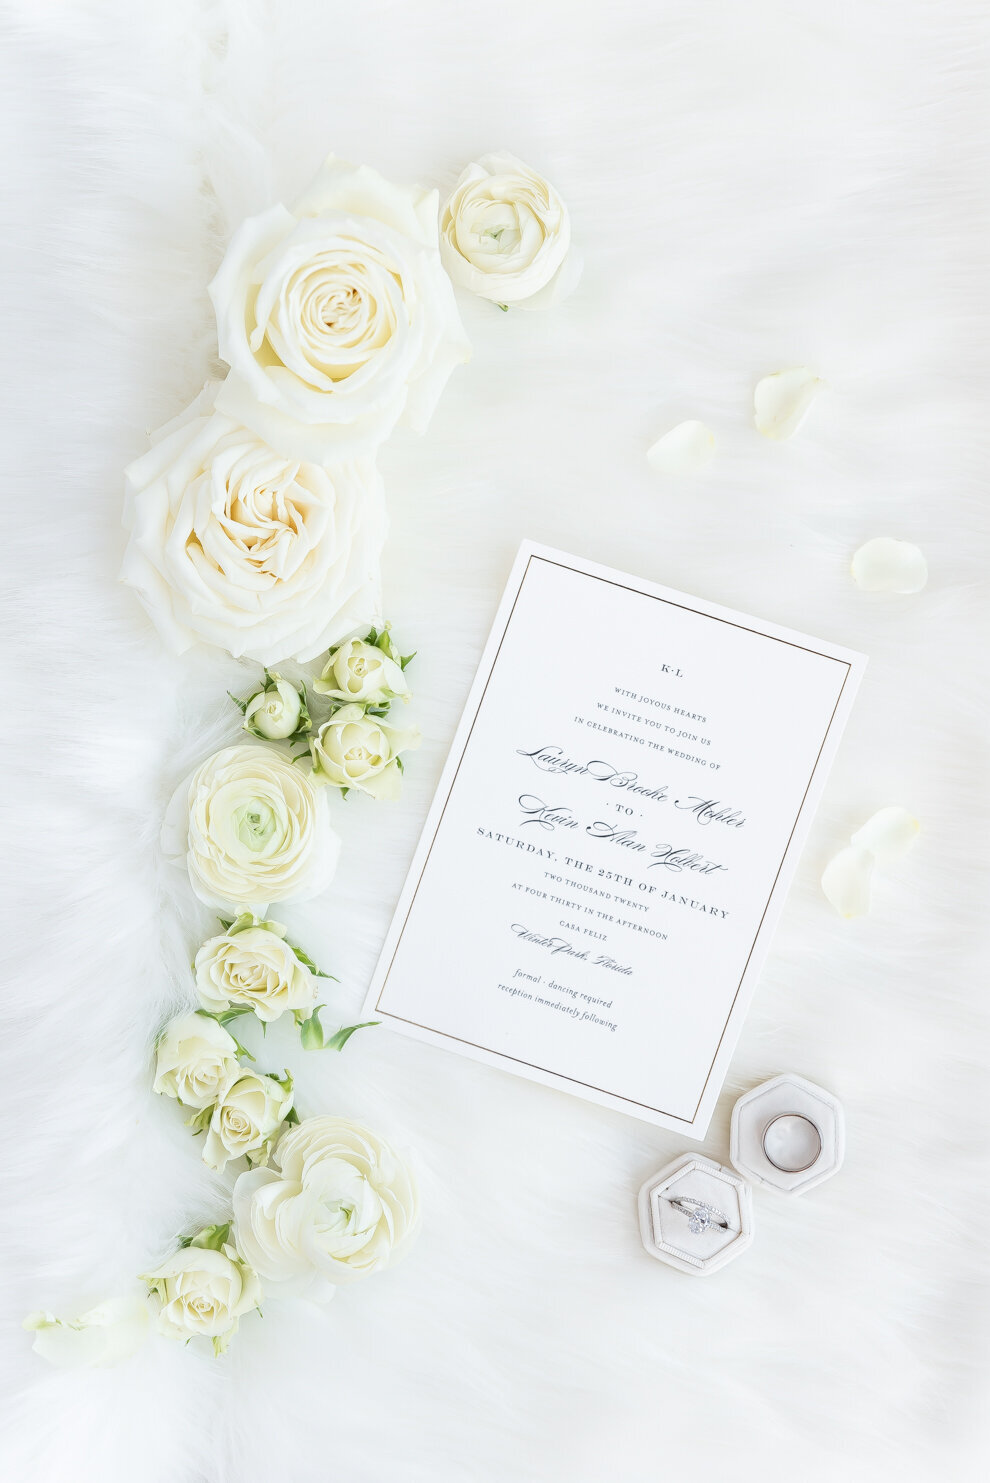 Wedding Invitation white  with white flowers and a ring